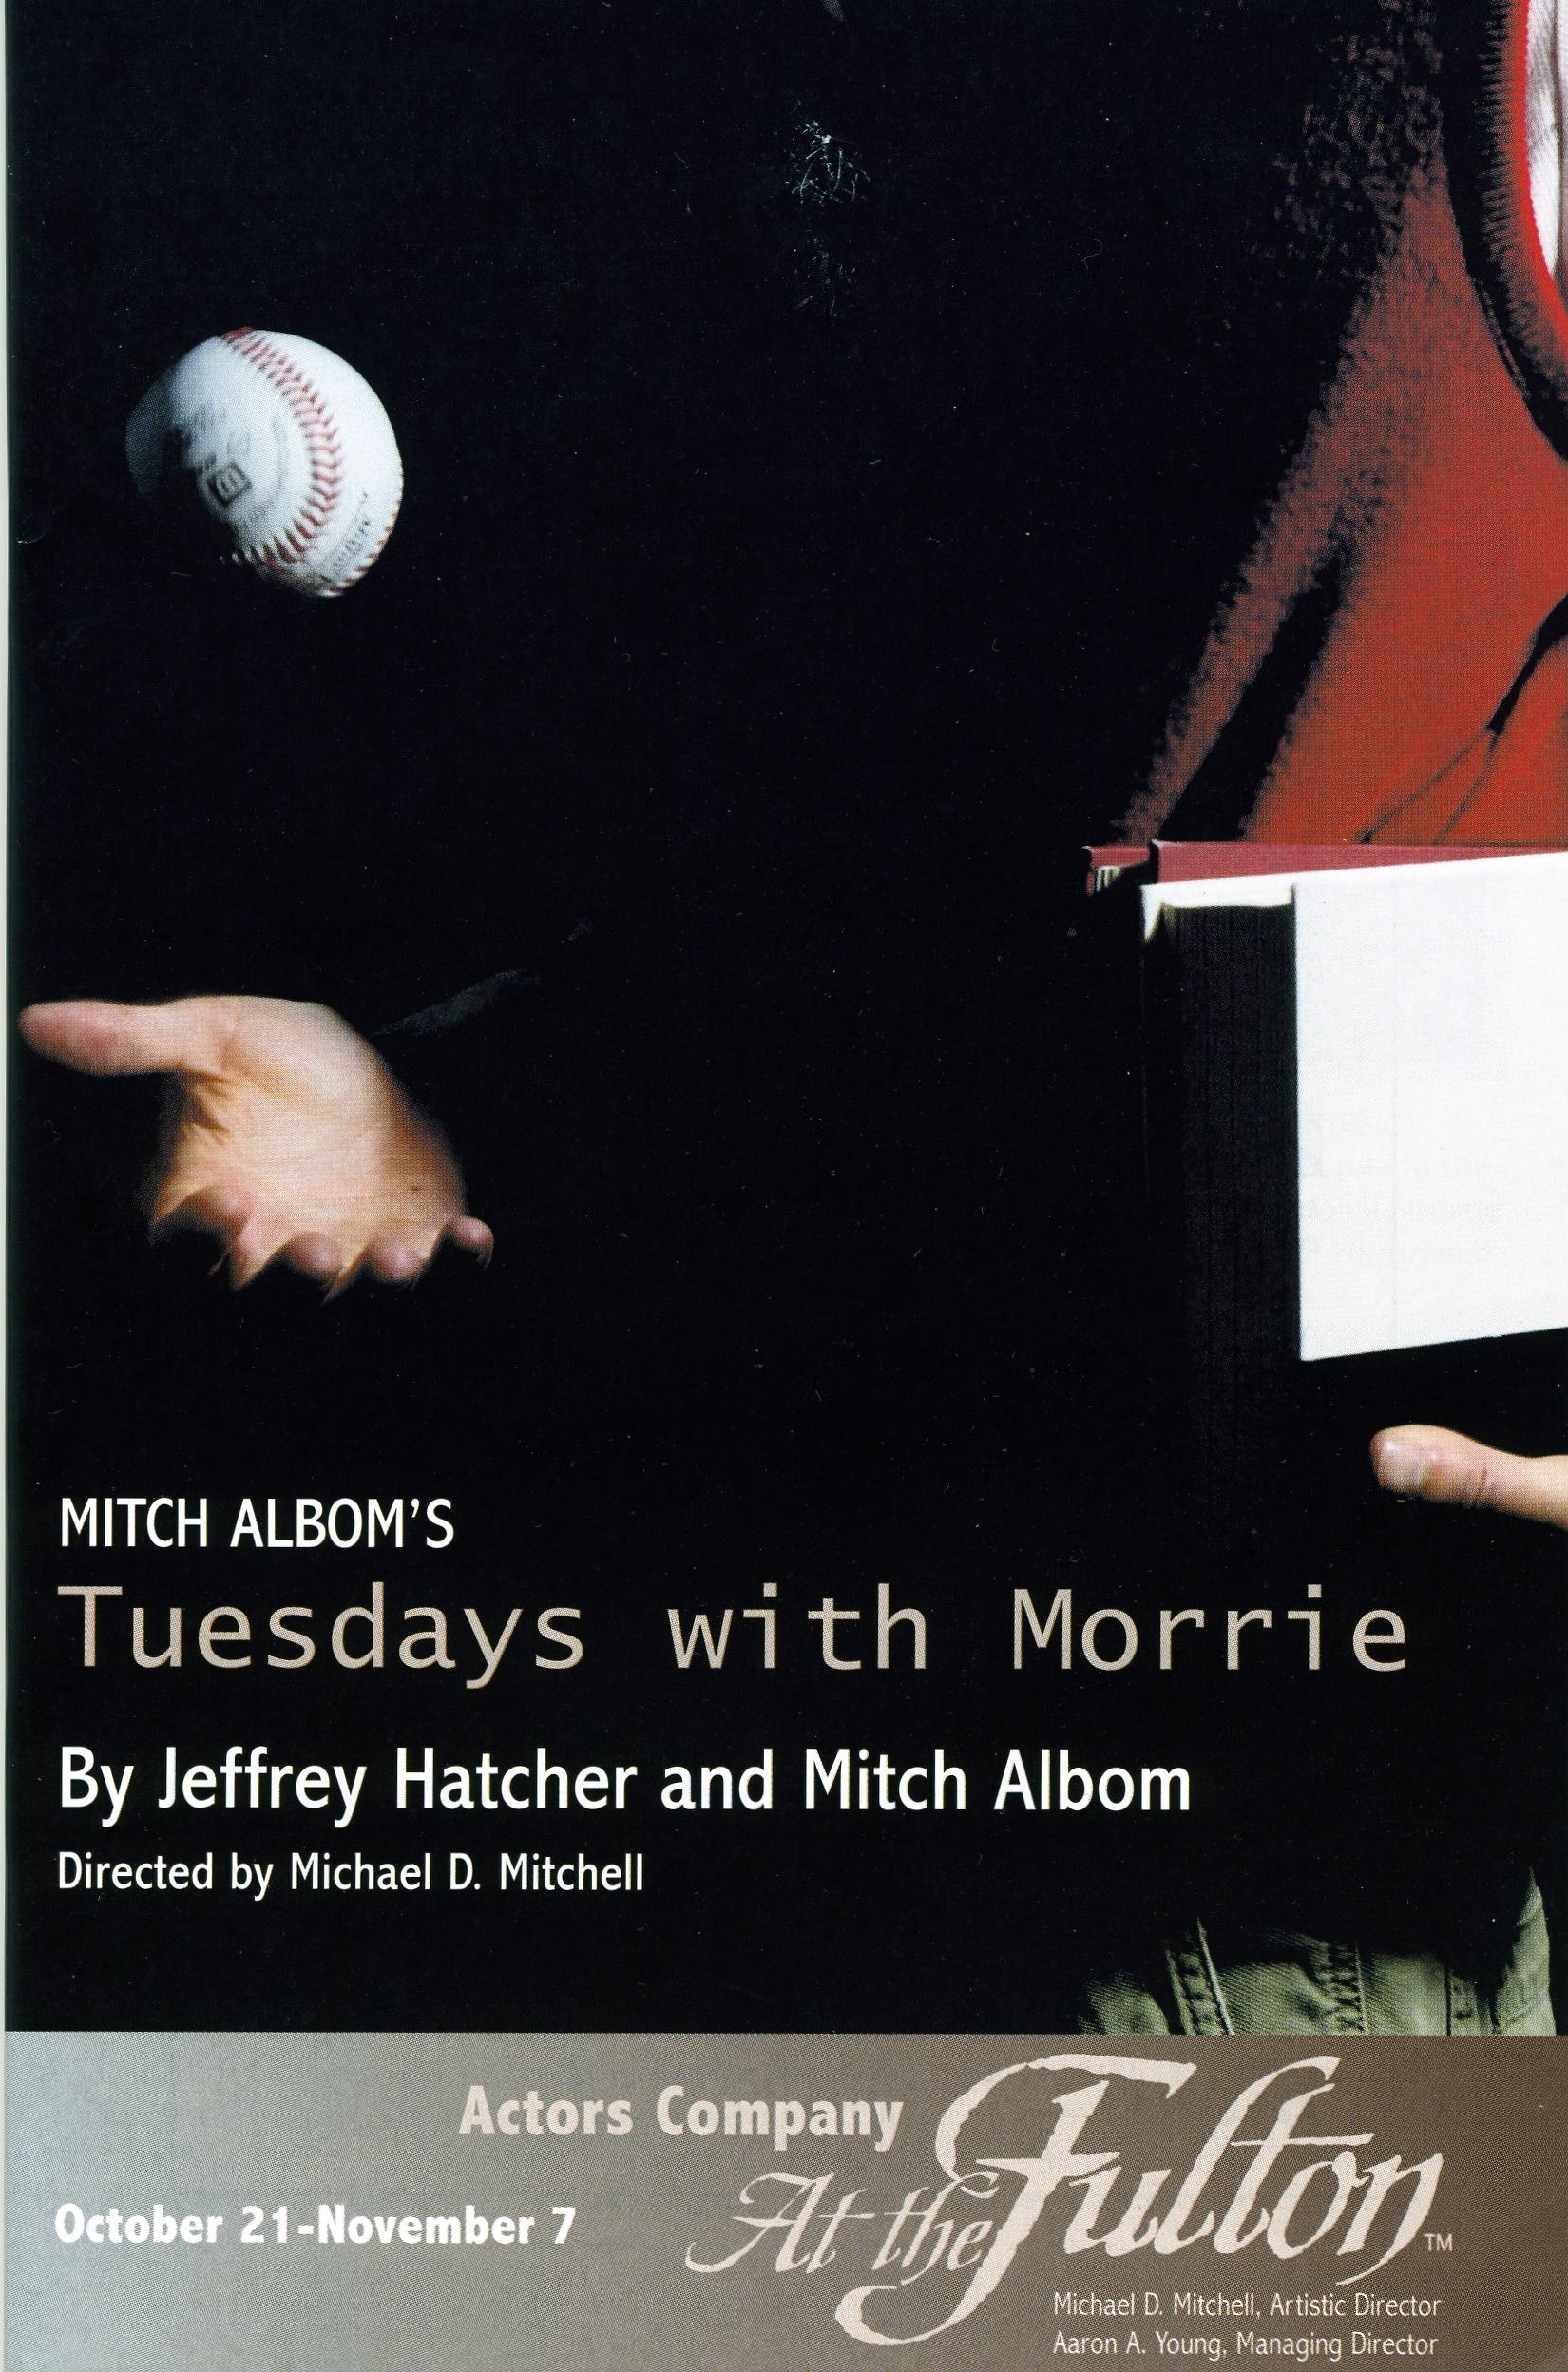 tuesdays with morrie by mitch albom: a lesson of love and death essay Tuesdays with morrie study guide contains a biography of mitch albom, literature essays, quiz questions, major themes, characters, and a full summary and analysis these papers were written primarily by students and provide critical analysis of tuesdays with morrie by mitch albom.